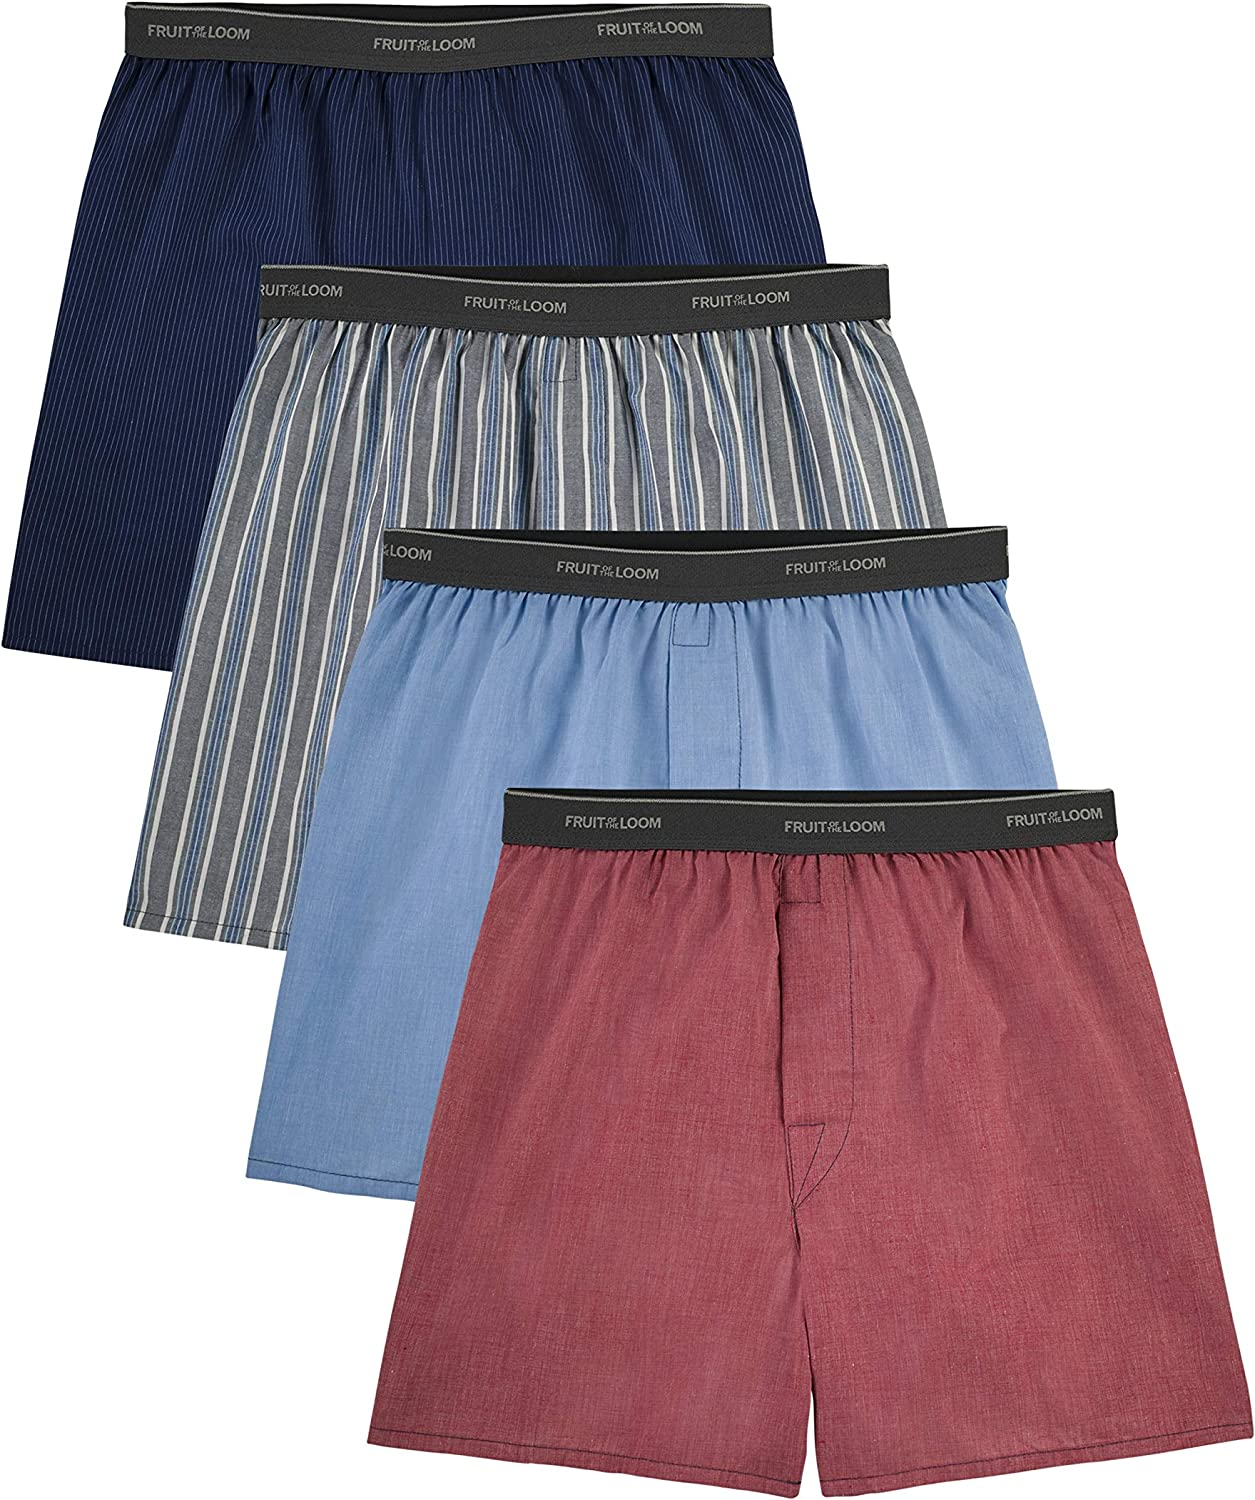 Fruit of the Loom Men's 4 Pack Extended Size Boxers